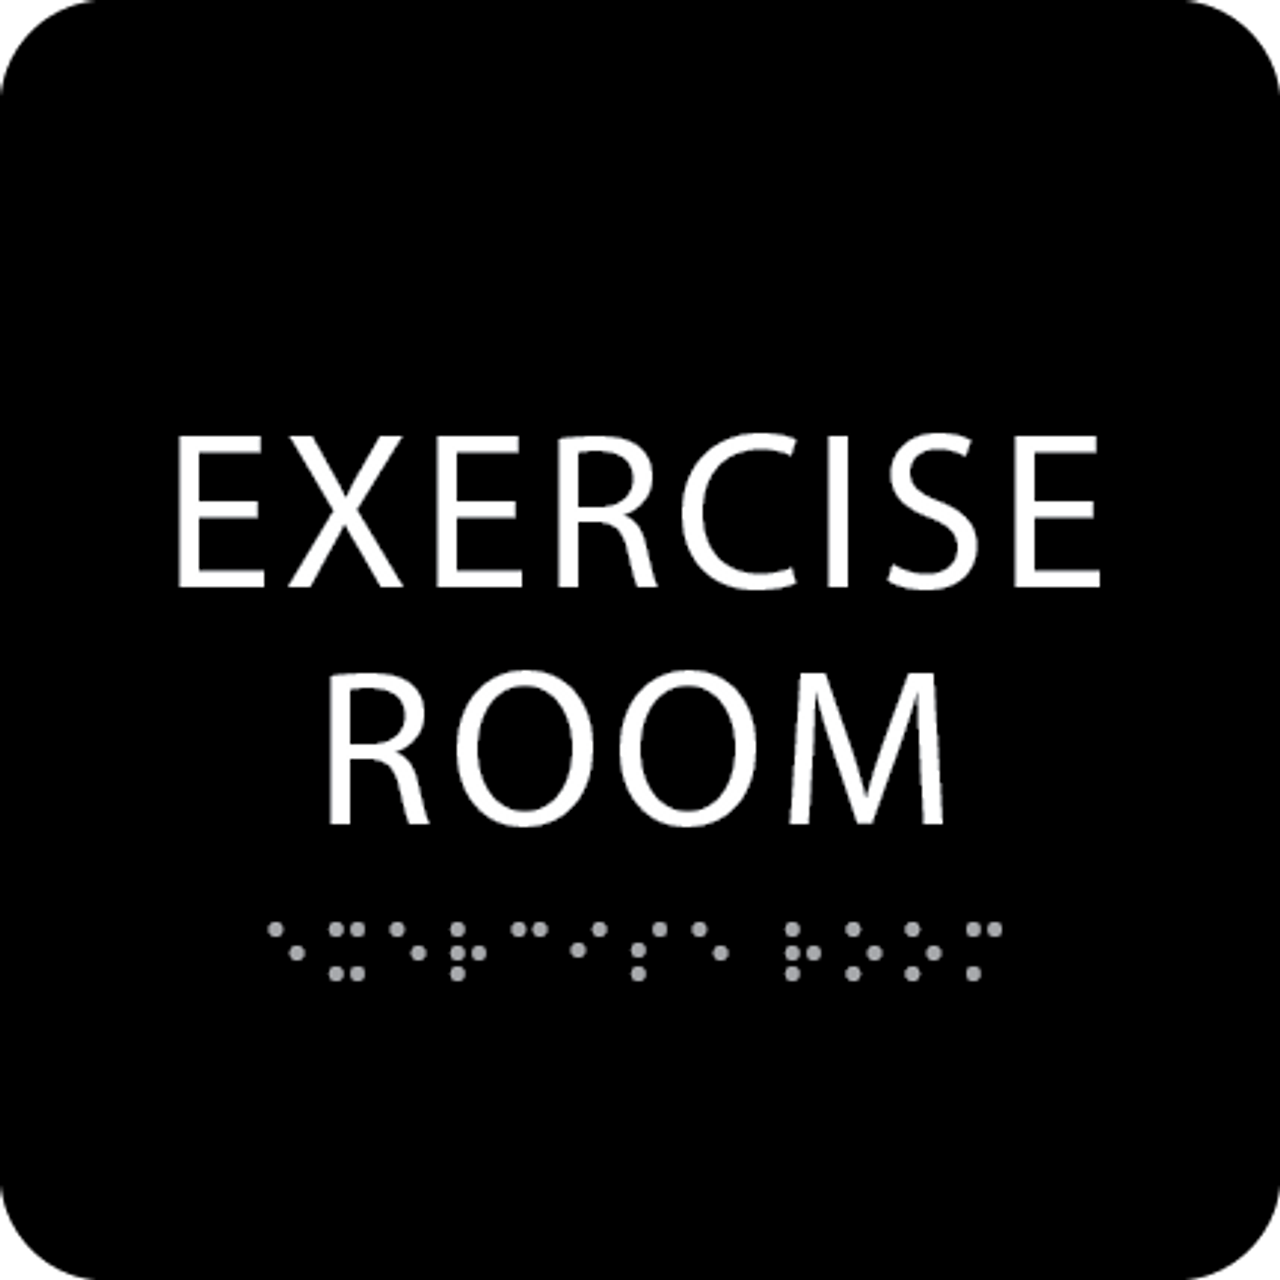 Black Exercise Room ADA Sign